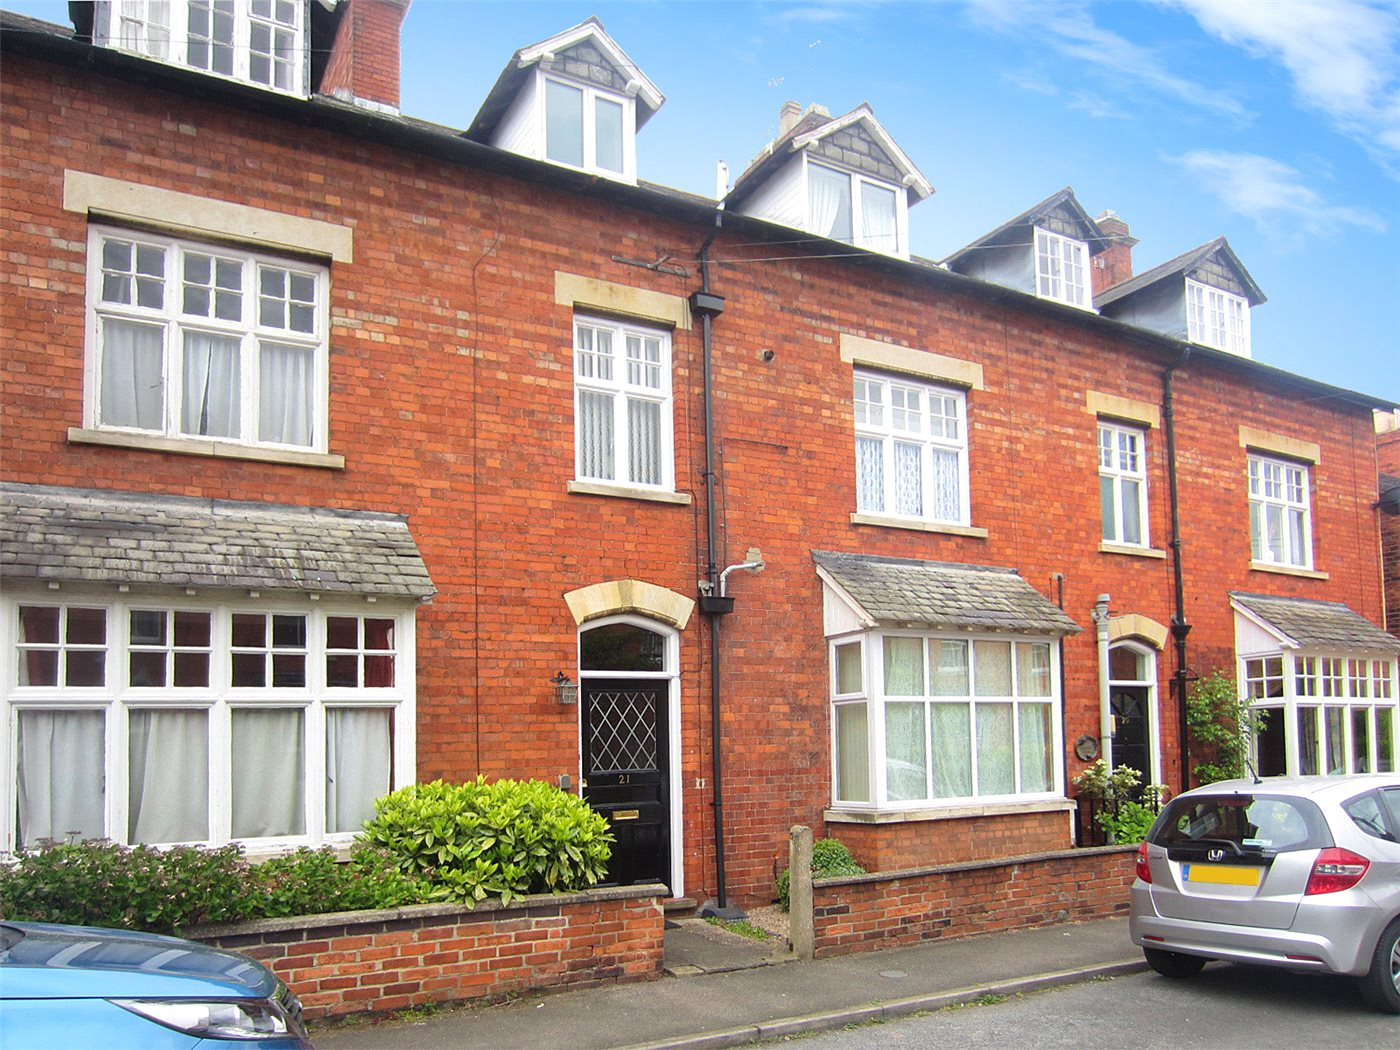 2 Bedrooms Flat for sale in Gladstone Terrace, Grantham, NG31